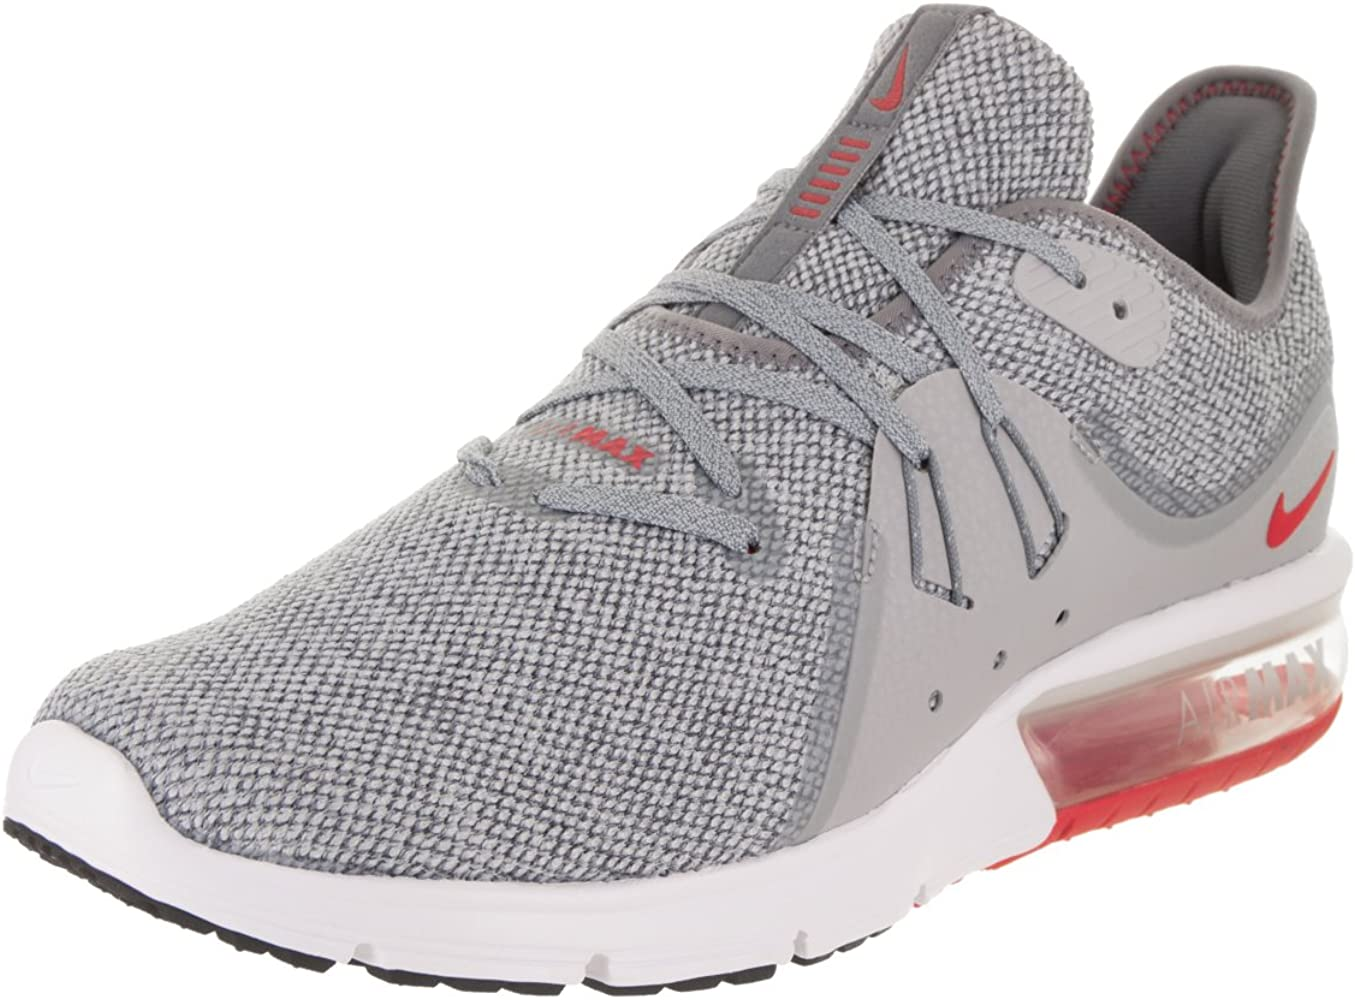 Men's Air Max Sequent 3 Running Shoes Cool GreyUniversity Red 7.5